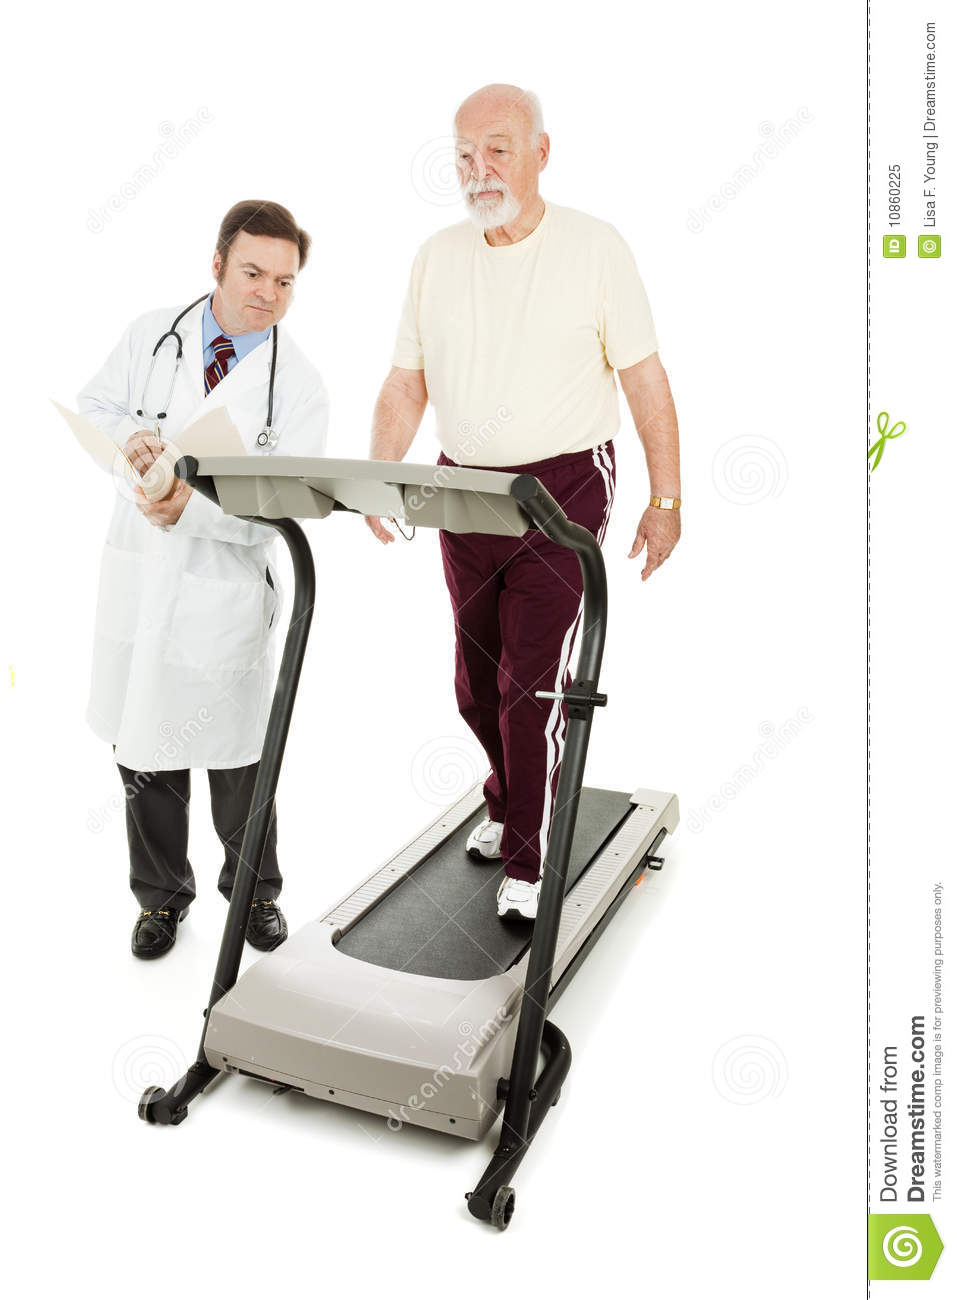 Doctor Monitors Senior On Treadmill Royalty Free Stock Photo   Image